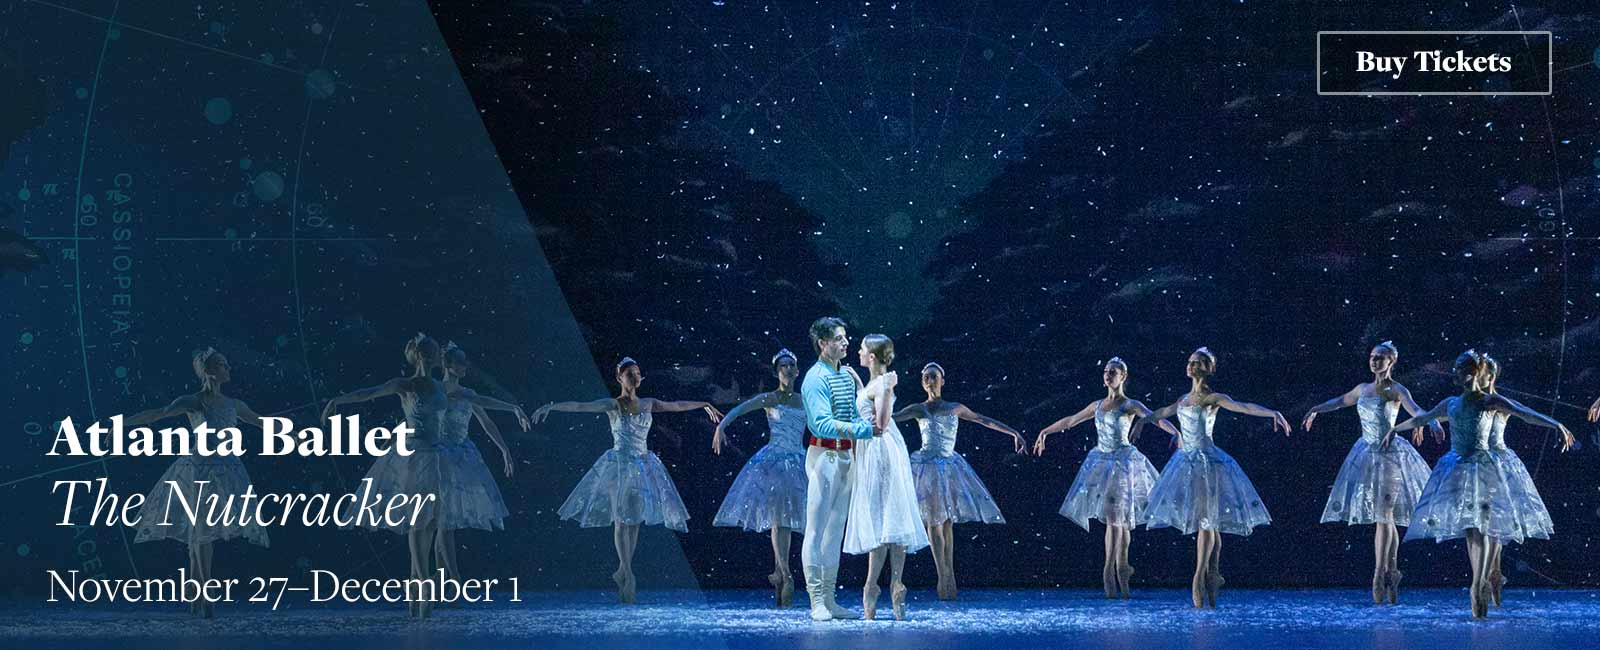 Atlanta Ballet: The Nutcracker